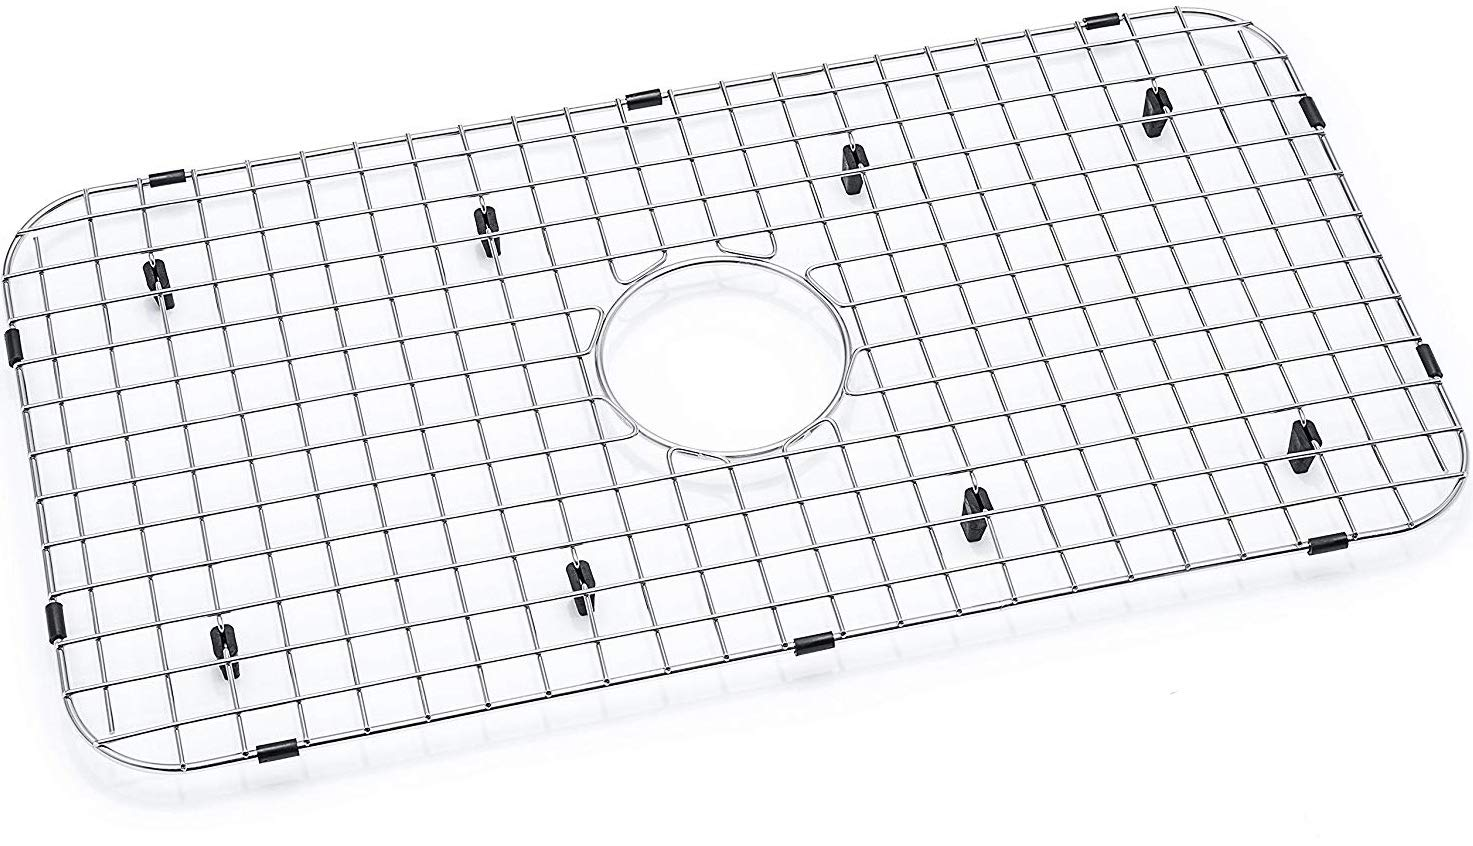 Kitchen Sink Grid - Premium Sink Bottom Grid - Stainless Steel - Sink Size Minimum 27 1/4'' x 14 1/4'' - Protect Your Sink from Scratches - Rust-resistant Metal